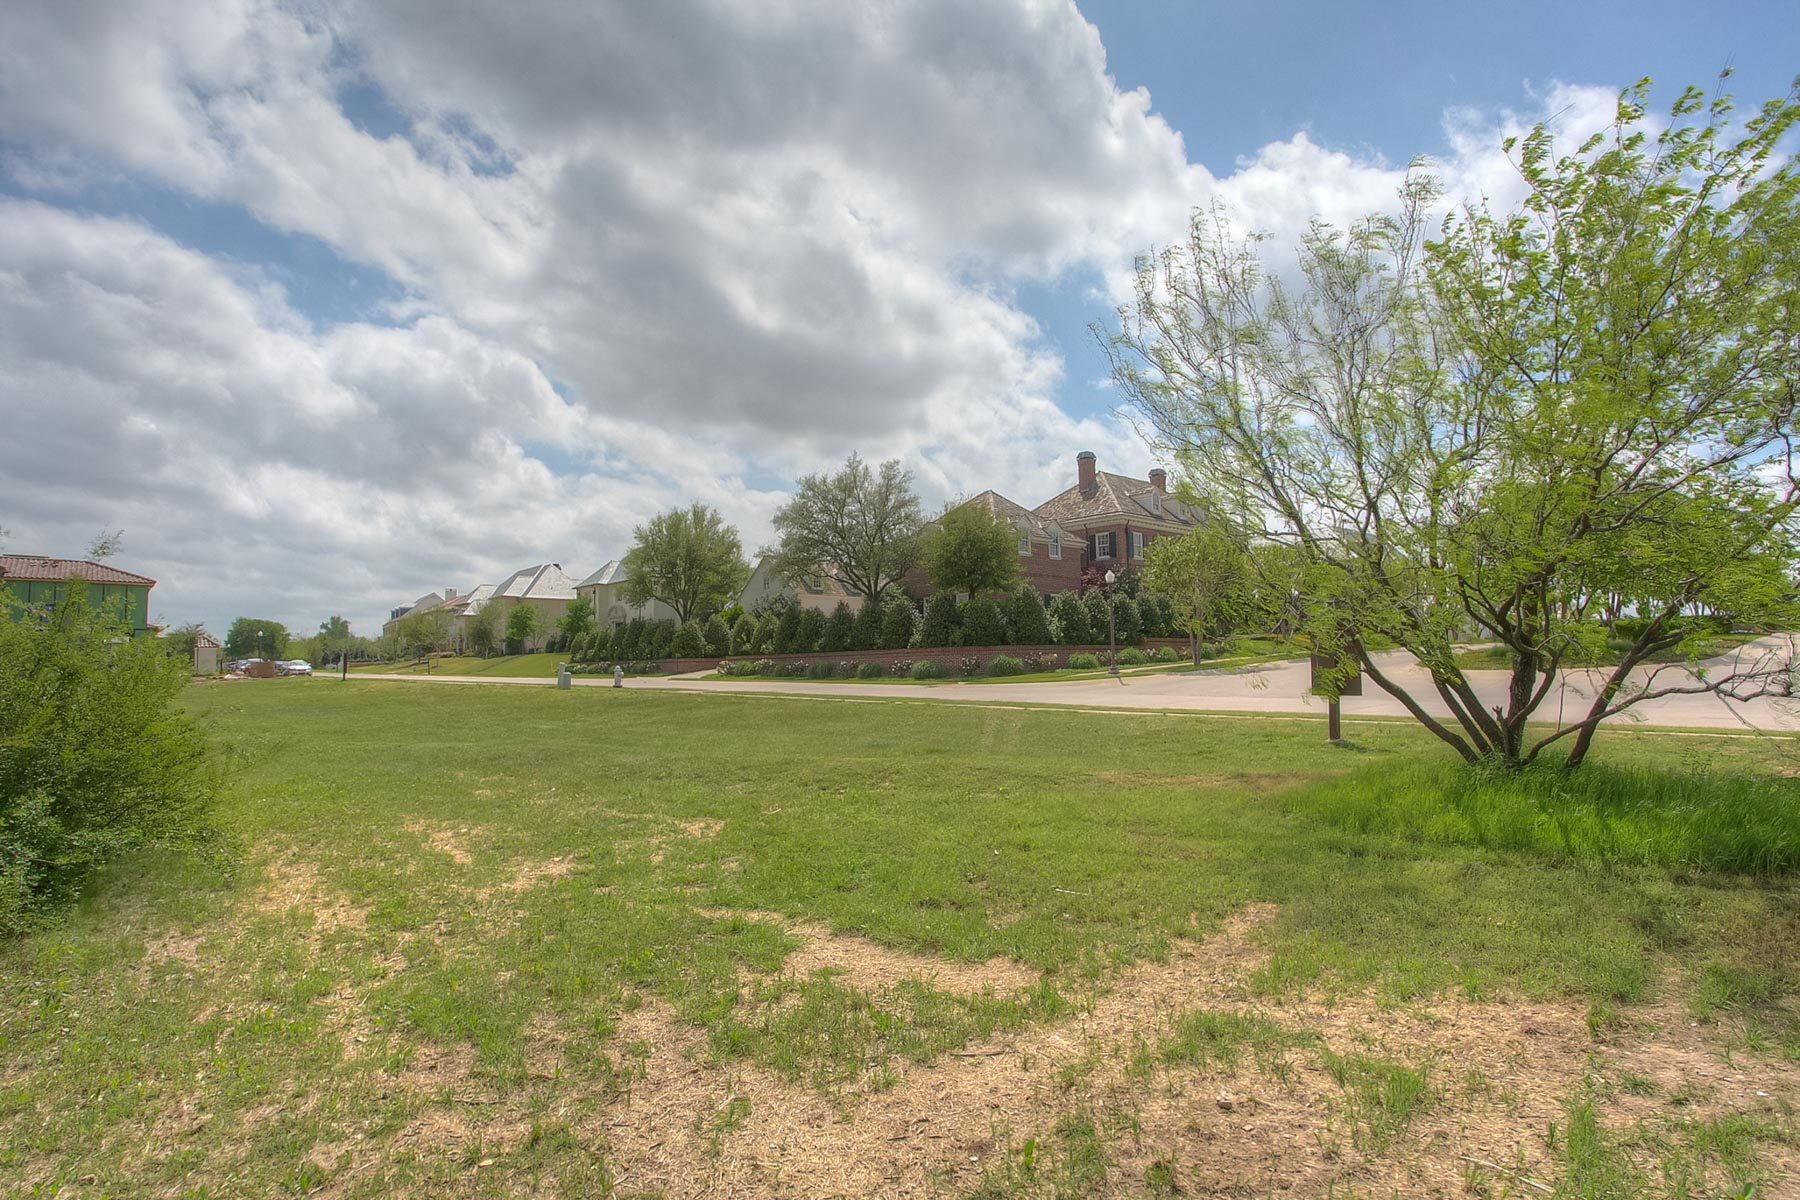 토지 용 매매 에 Fantastic Opportunity in Riverhills 3757 Riverhills View Drive Fort Worth, 텍사스, 76109 미국